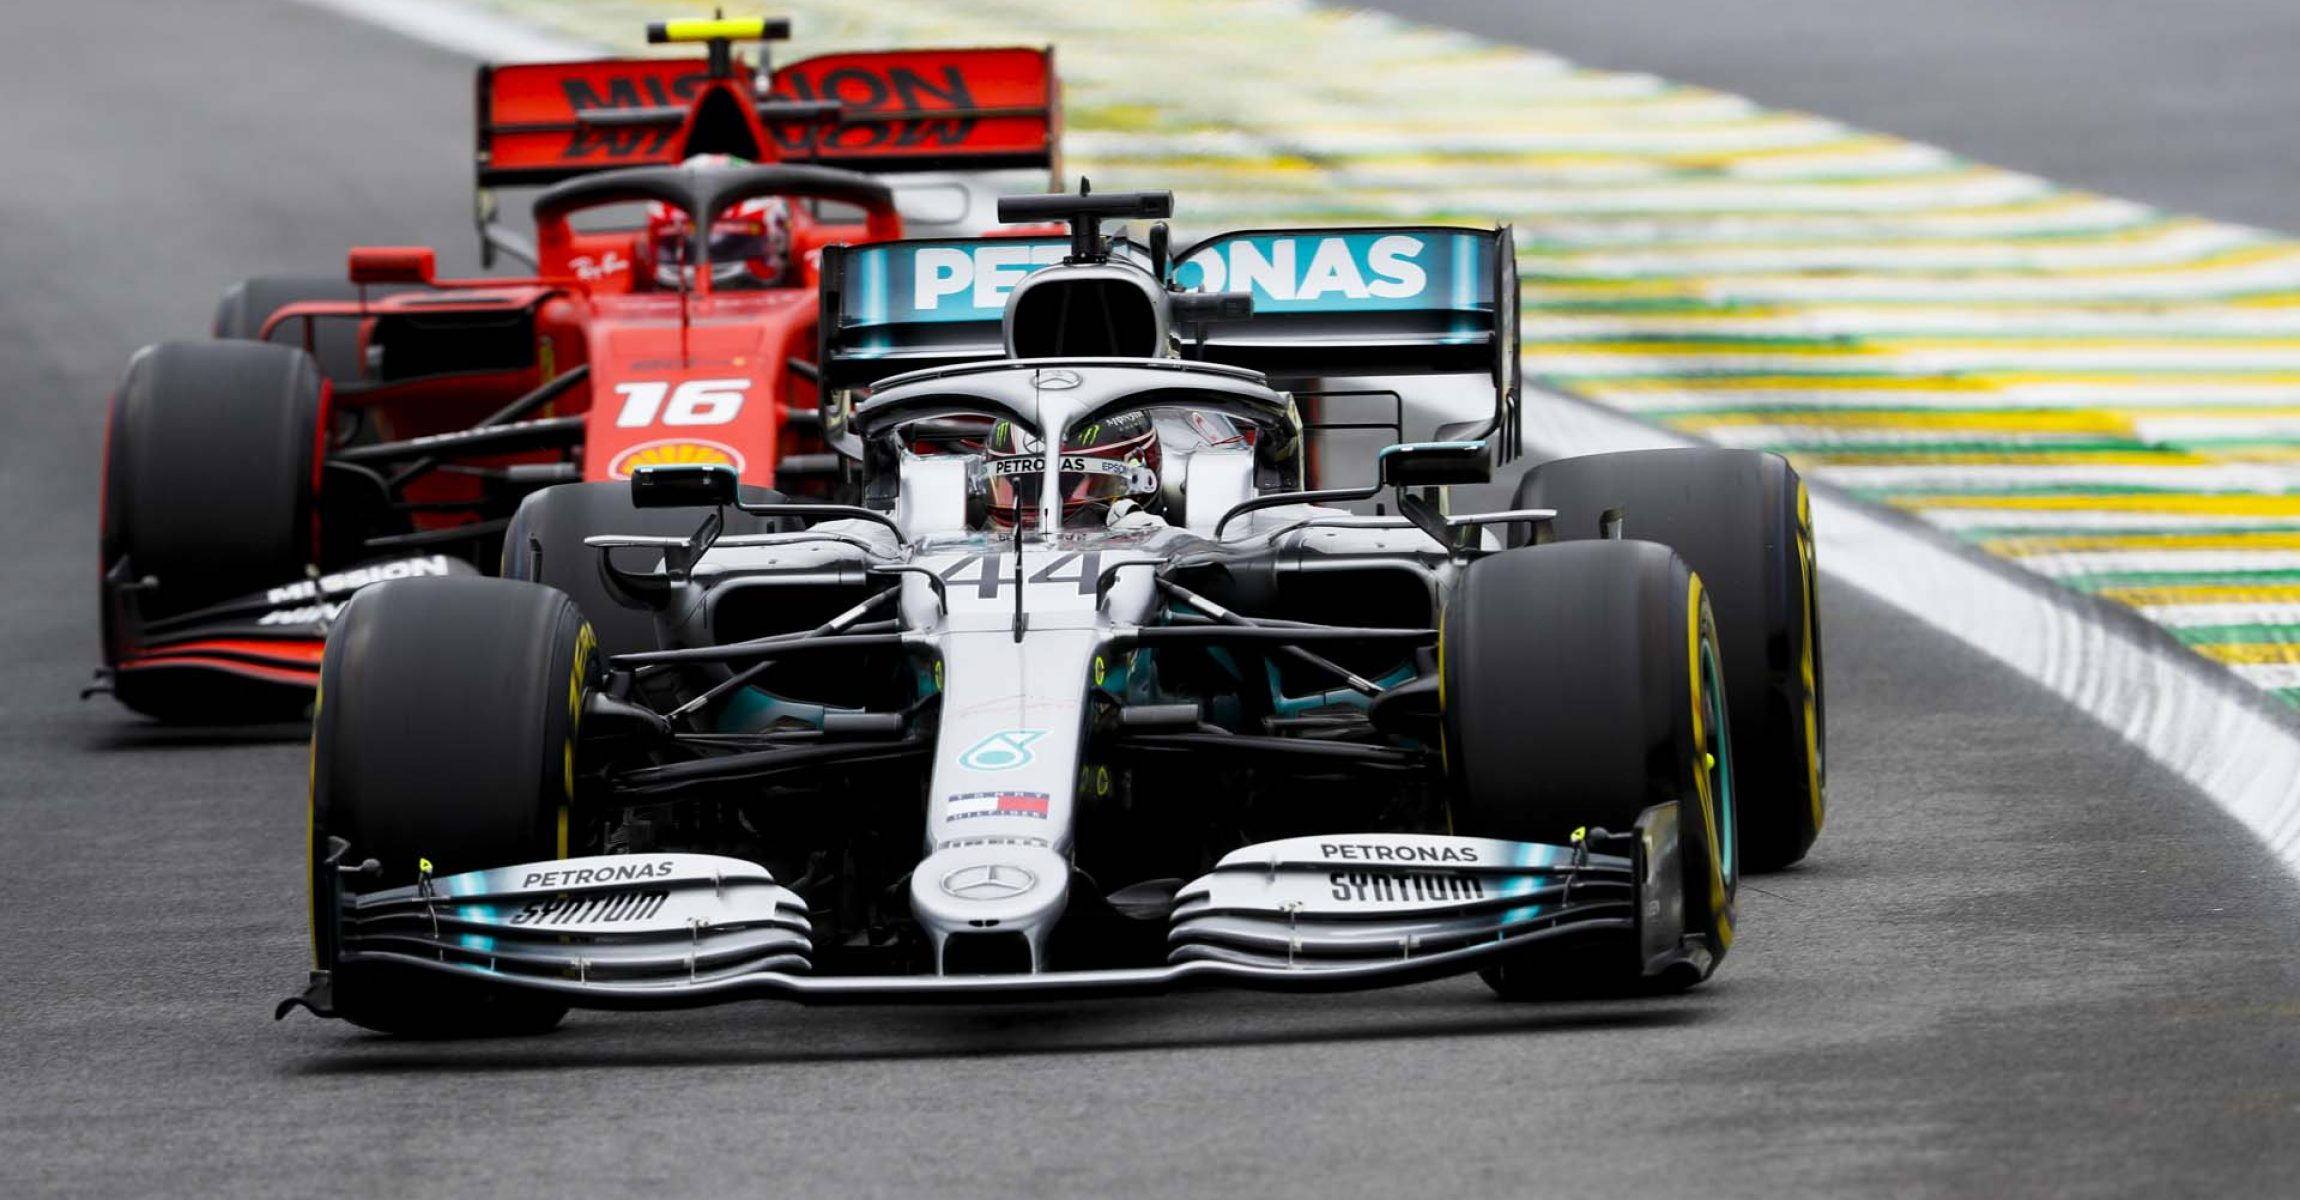 SAO PAULO, BRAZIL - NOVEMBER 15: Lewis Hamilton, Mercedes AMG F1 W10 and Charles Leclerc, Ferrari SF90 during the 2019 Formula One Brazilian Grand Prix at Autódromo José Carlos Pace, on November 15, 2019 in Sao Paulo, Brazil. (Photo by Zak Mauger / LAT Images)